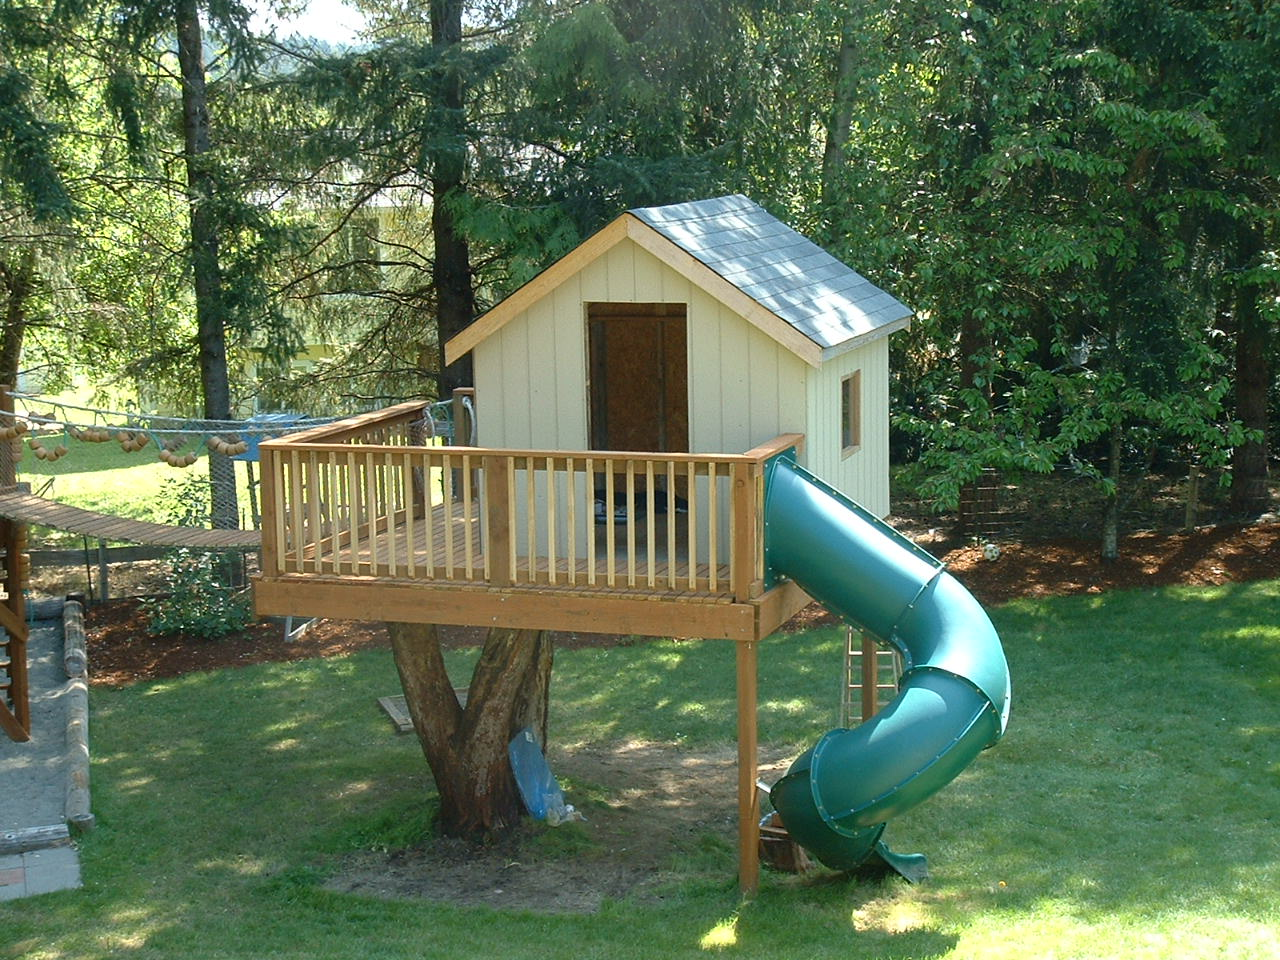 As well diy simple tree house on simple treehouse designs for kids